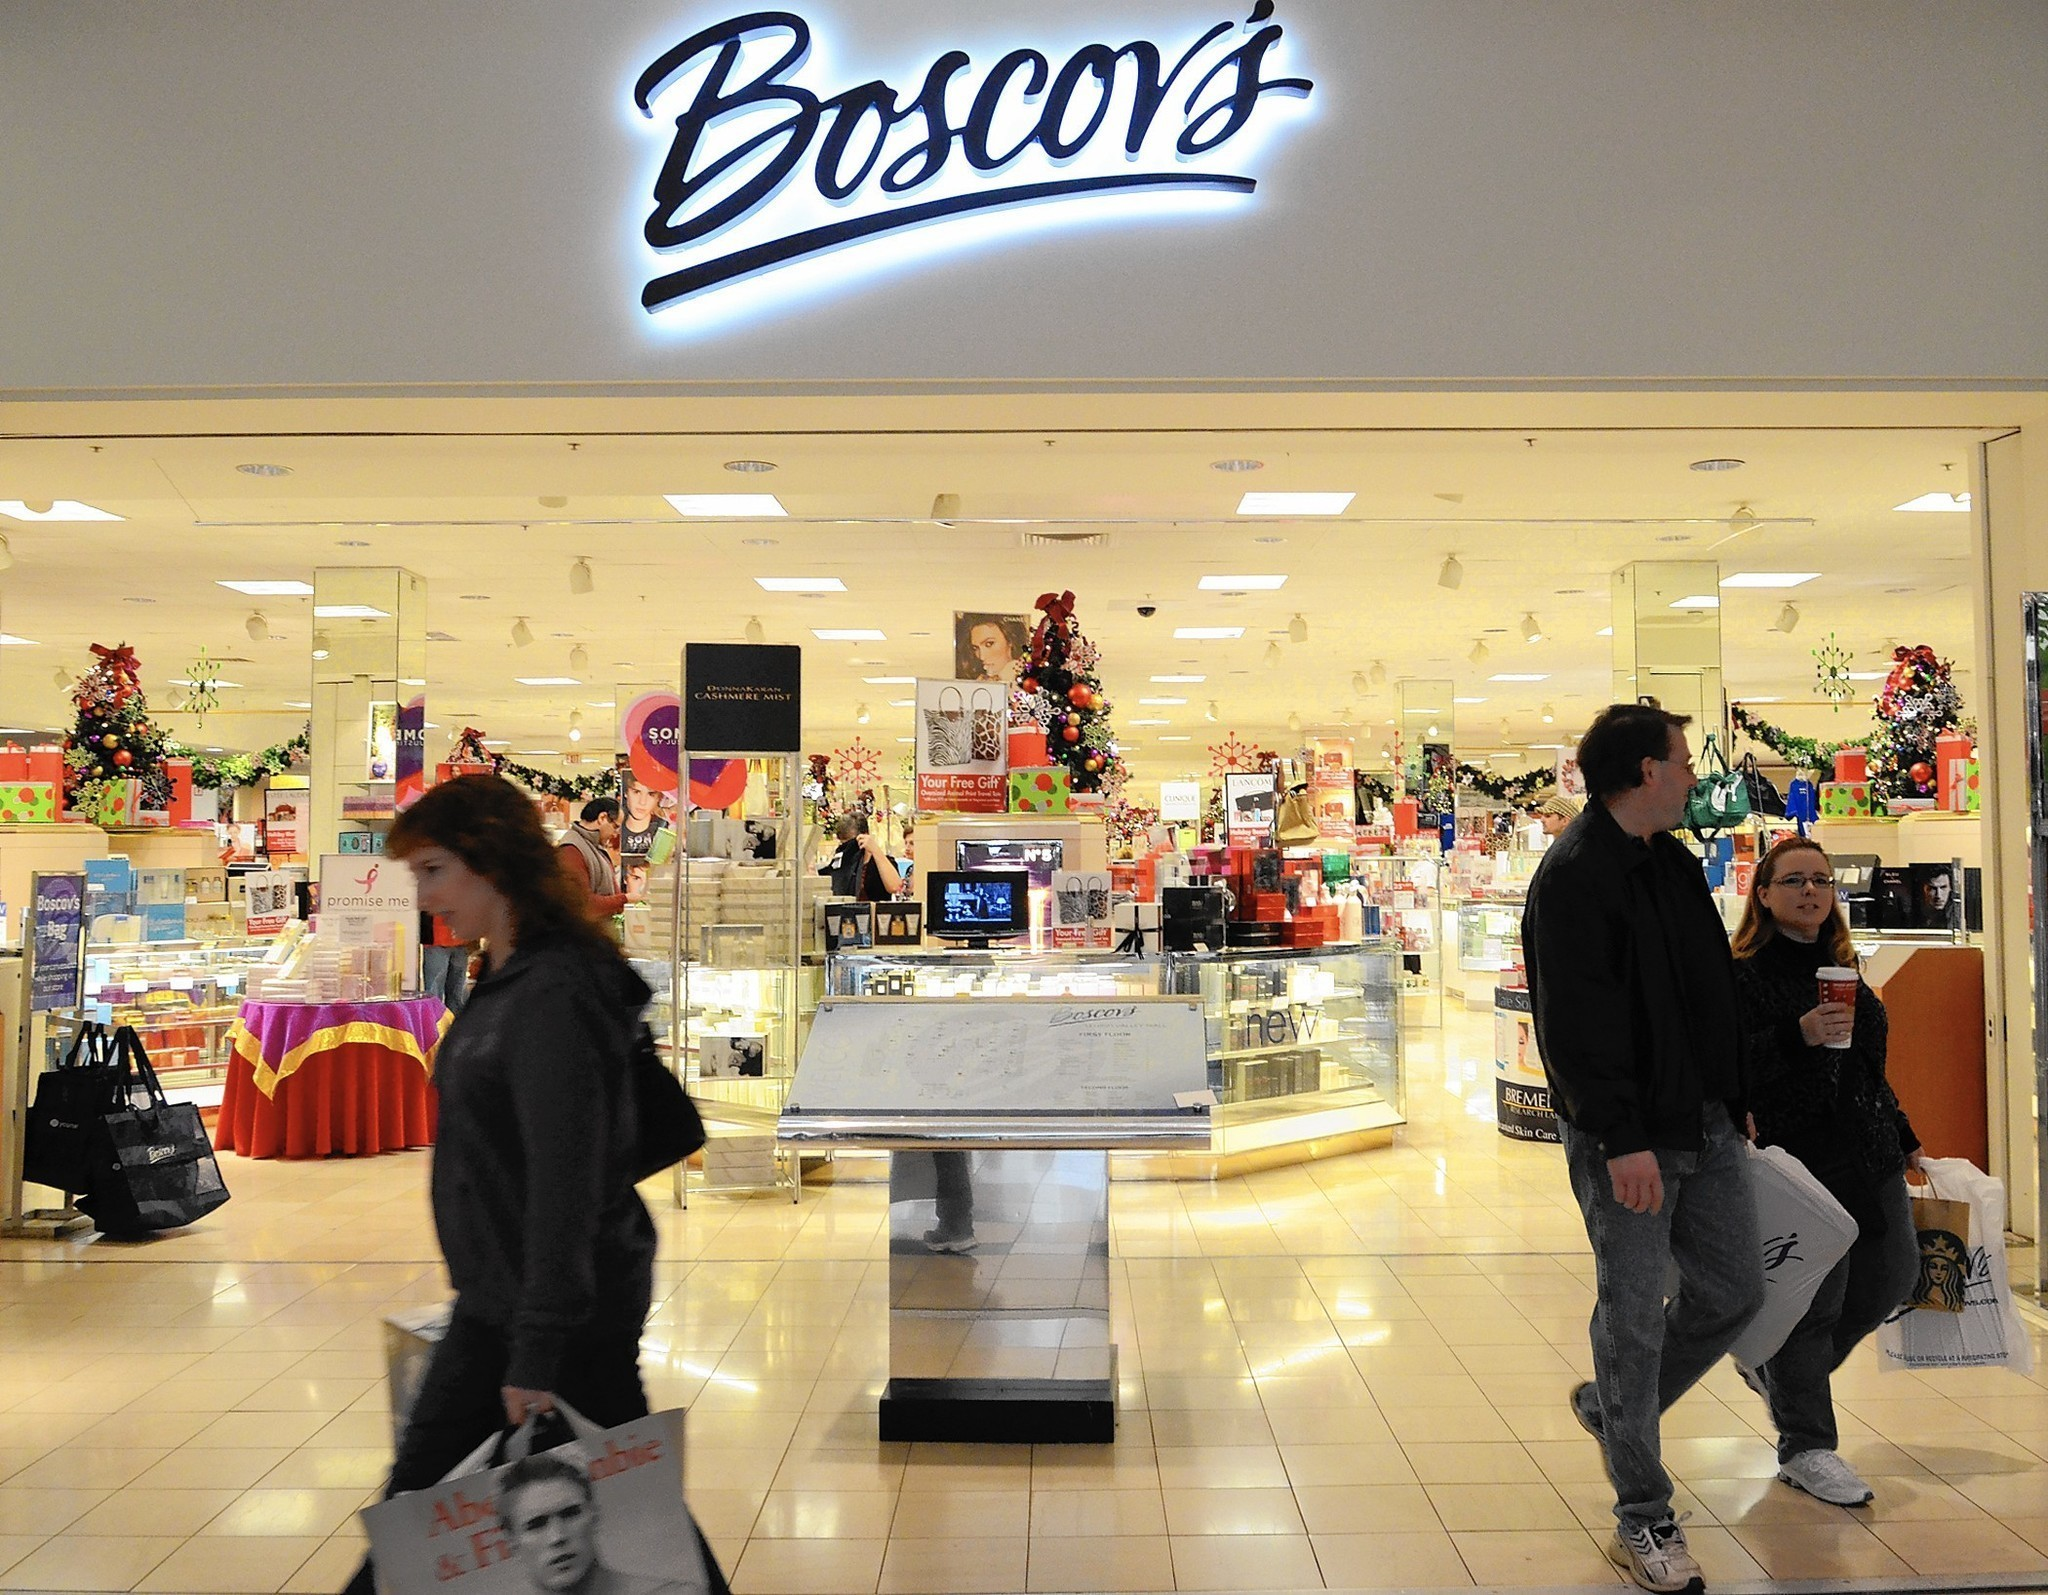 Purchase must be placed on Boscov's credit card. Accounts must to be in good standing. Cardholder must have made a purchase on their Boscov's Credit Card within the last 12 months to receive the birthday offer. †B-Rewarded is provided by Boscov's and its terms may change at any time.